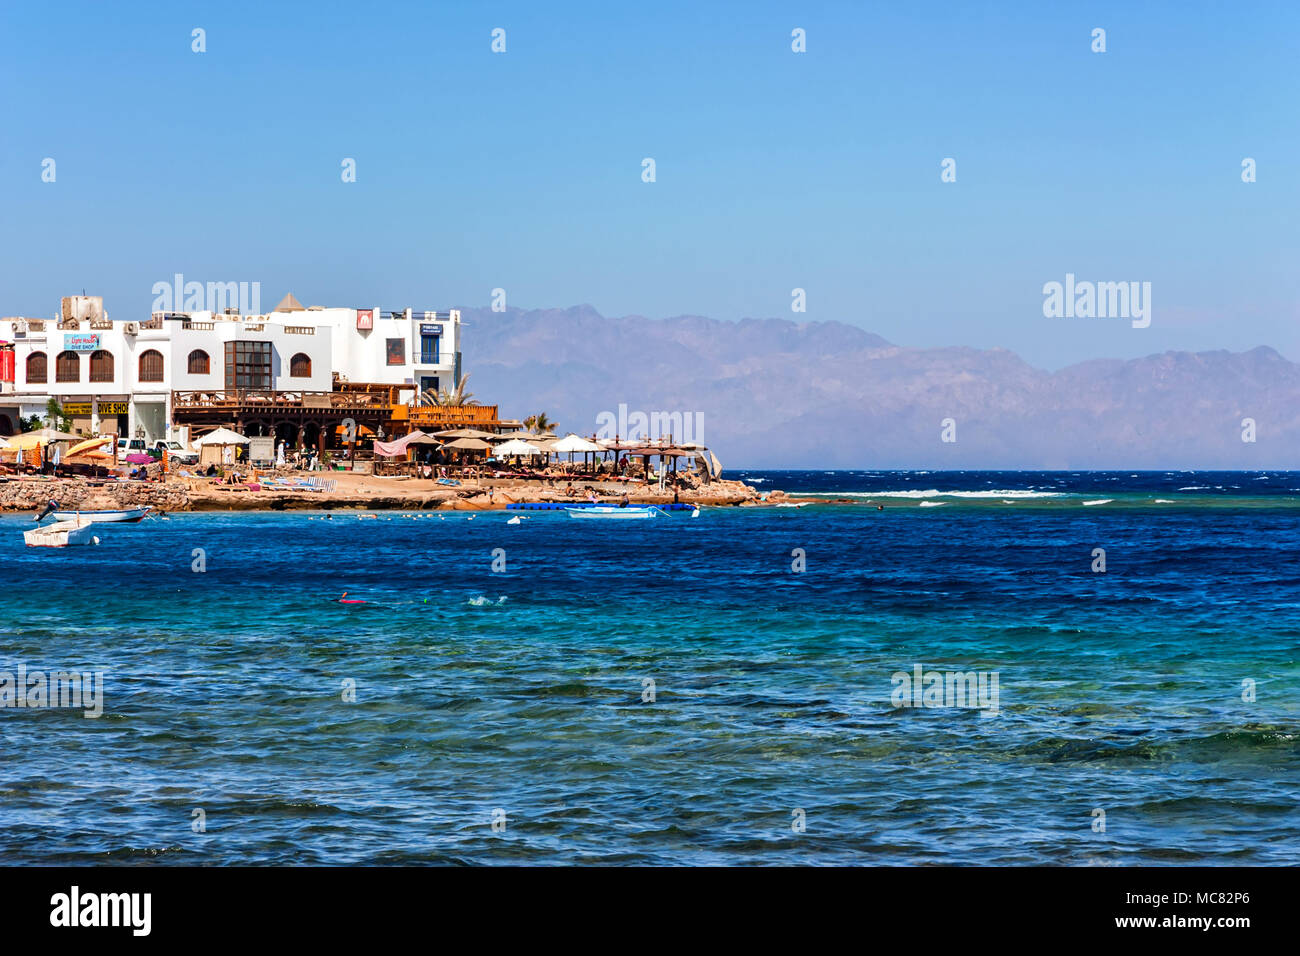 DAHAB, EGYPT - SEPTEMBER 2, 2010: Beautiful view of Red Sea coast and hotels in Dahab, Egypt. Dahab is now considered to be one of Sinai's most treasu - Stock Image